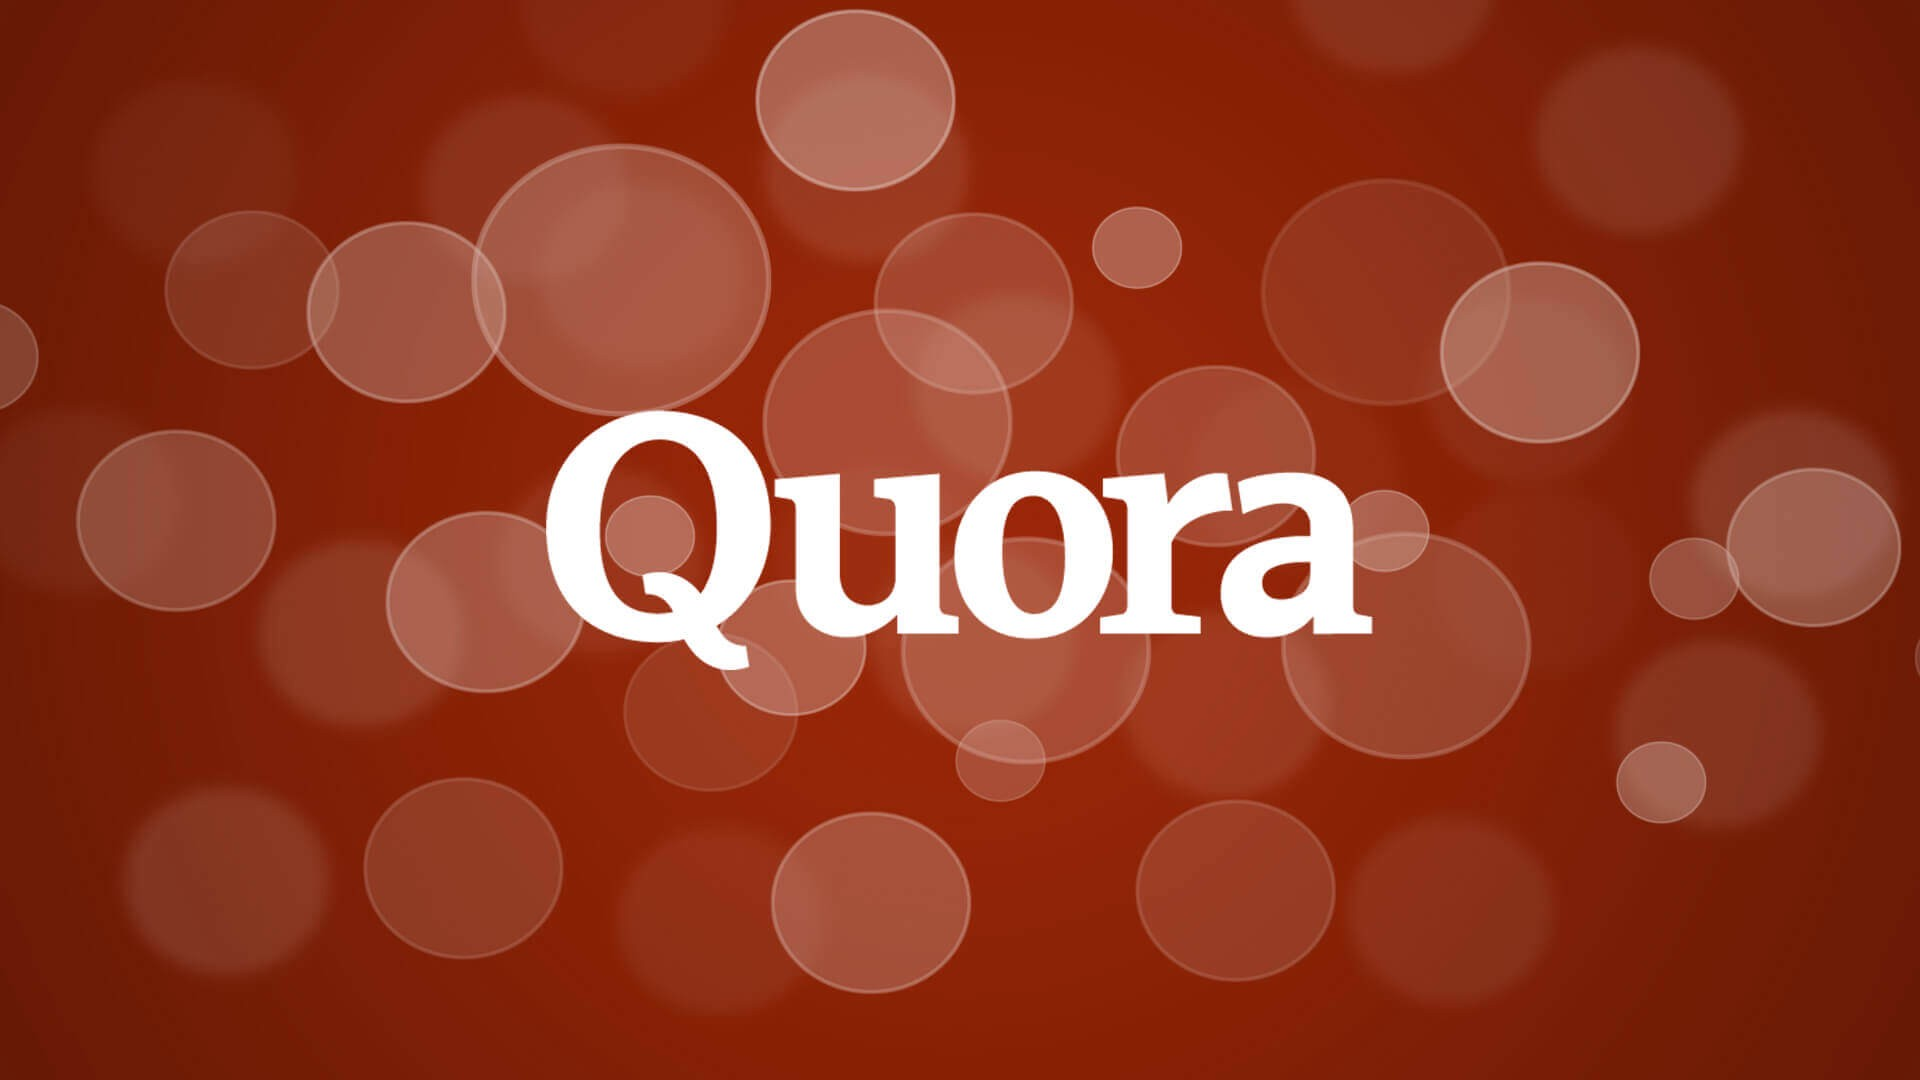 quora-and-machine-learning